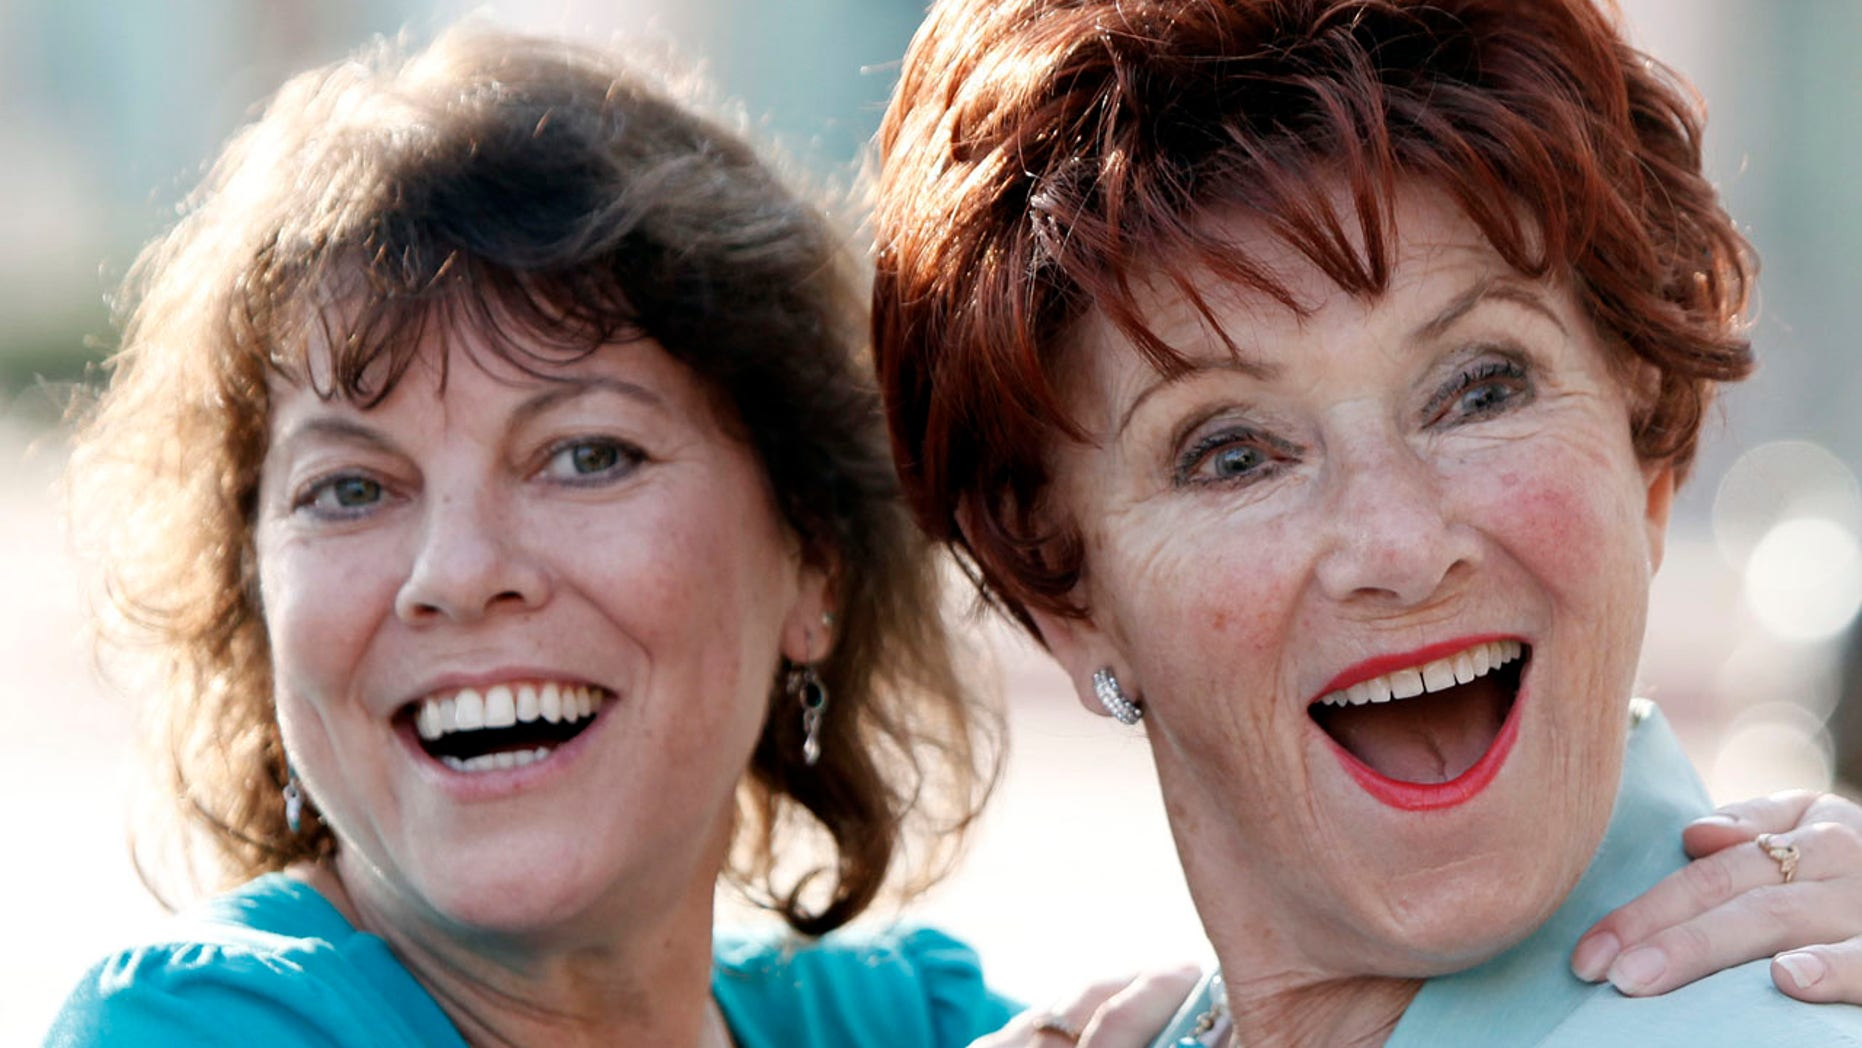 """FILE - In this June 18, 2009 file photo, actresses Erin Moran, left, and Marion Ross pose together at the Academy of Television Arts and Sciences' """"A Father's Day Salute to TV Dads"""" in the North Hollywood section of Los Angeles."""